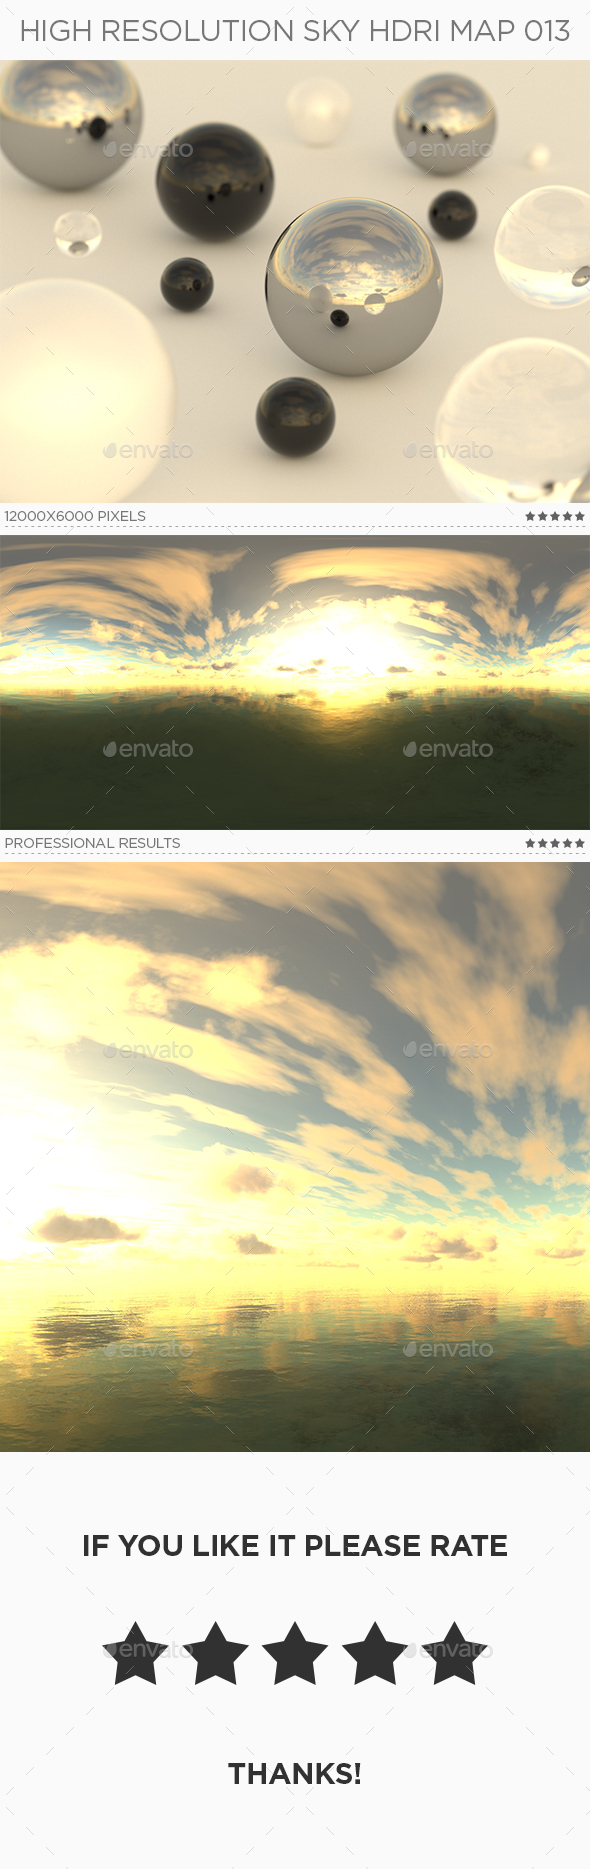 High Resolution Sky HDRi Map 013 - 3DOcean Item for Sale